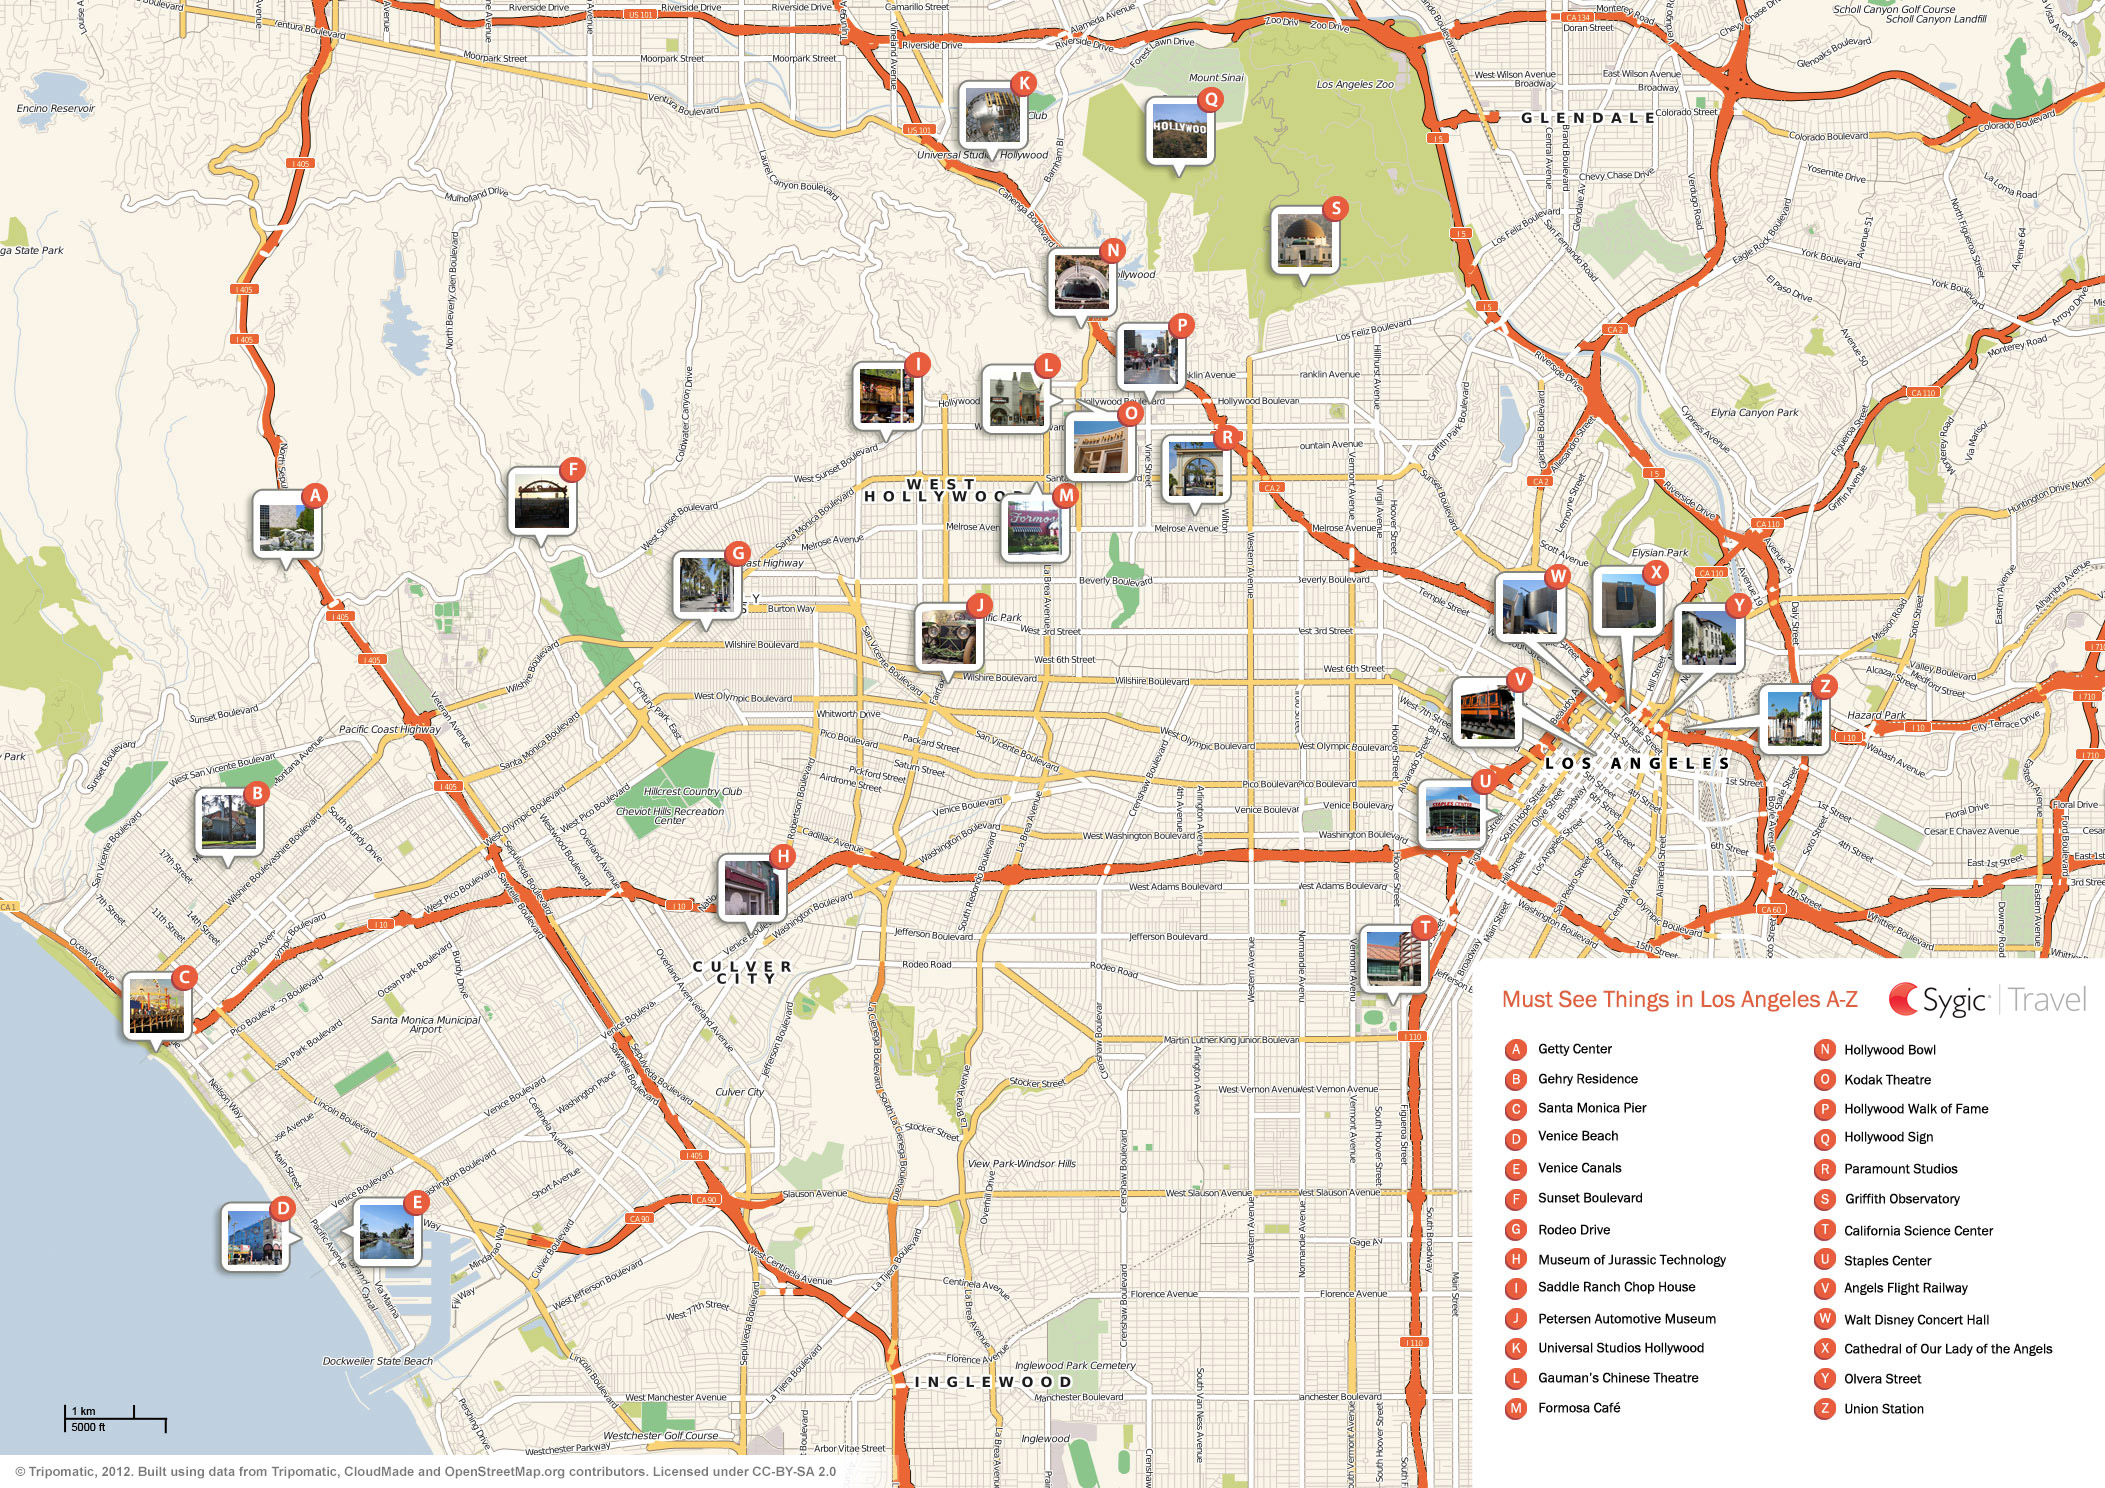 Los Angeles Printable Tourist Map – Top Tourist Attractions Map In Chicago